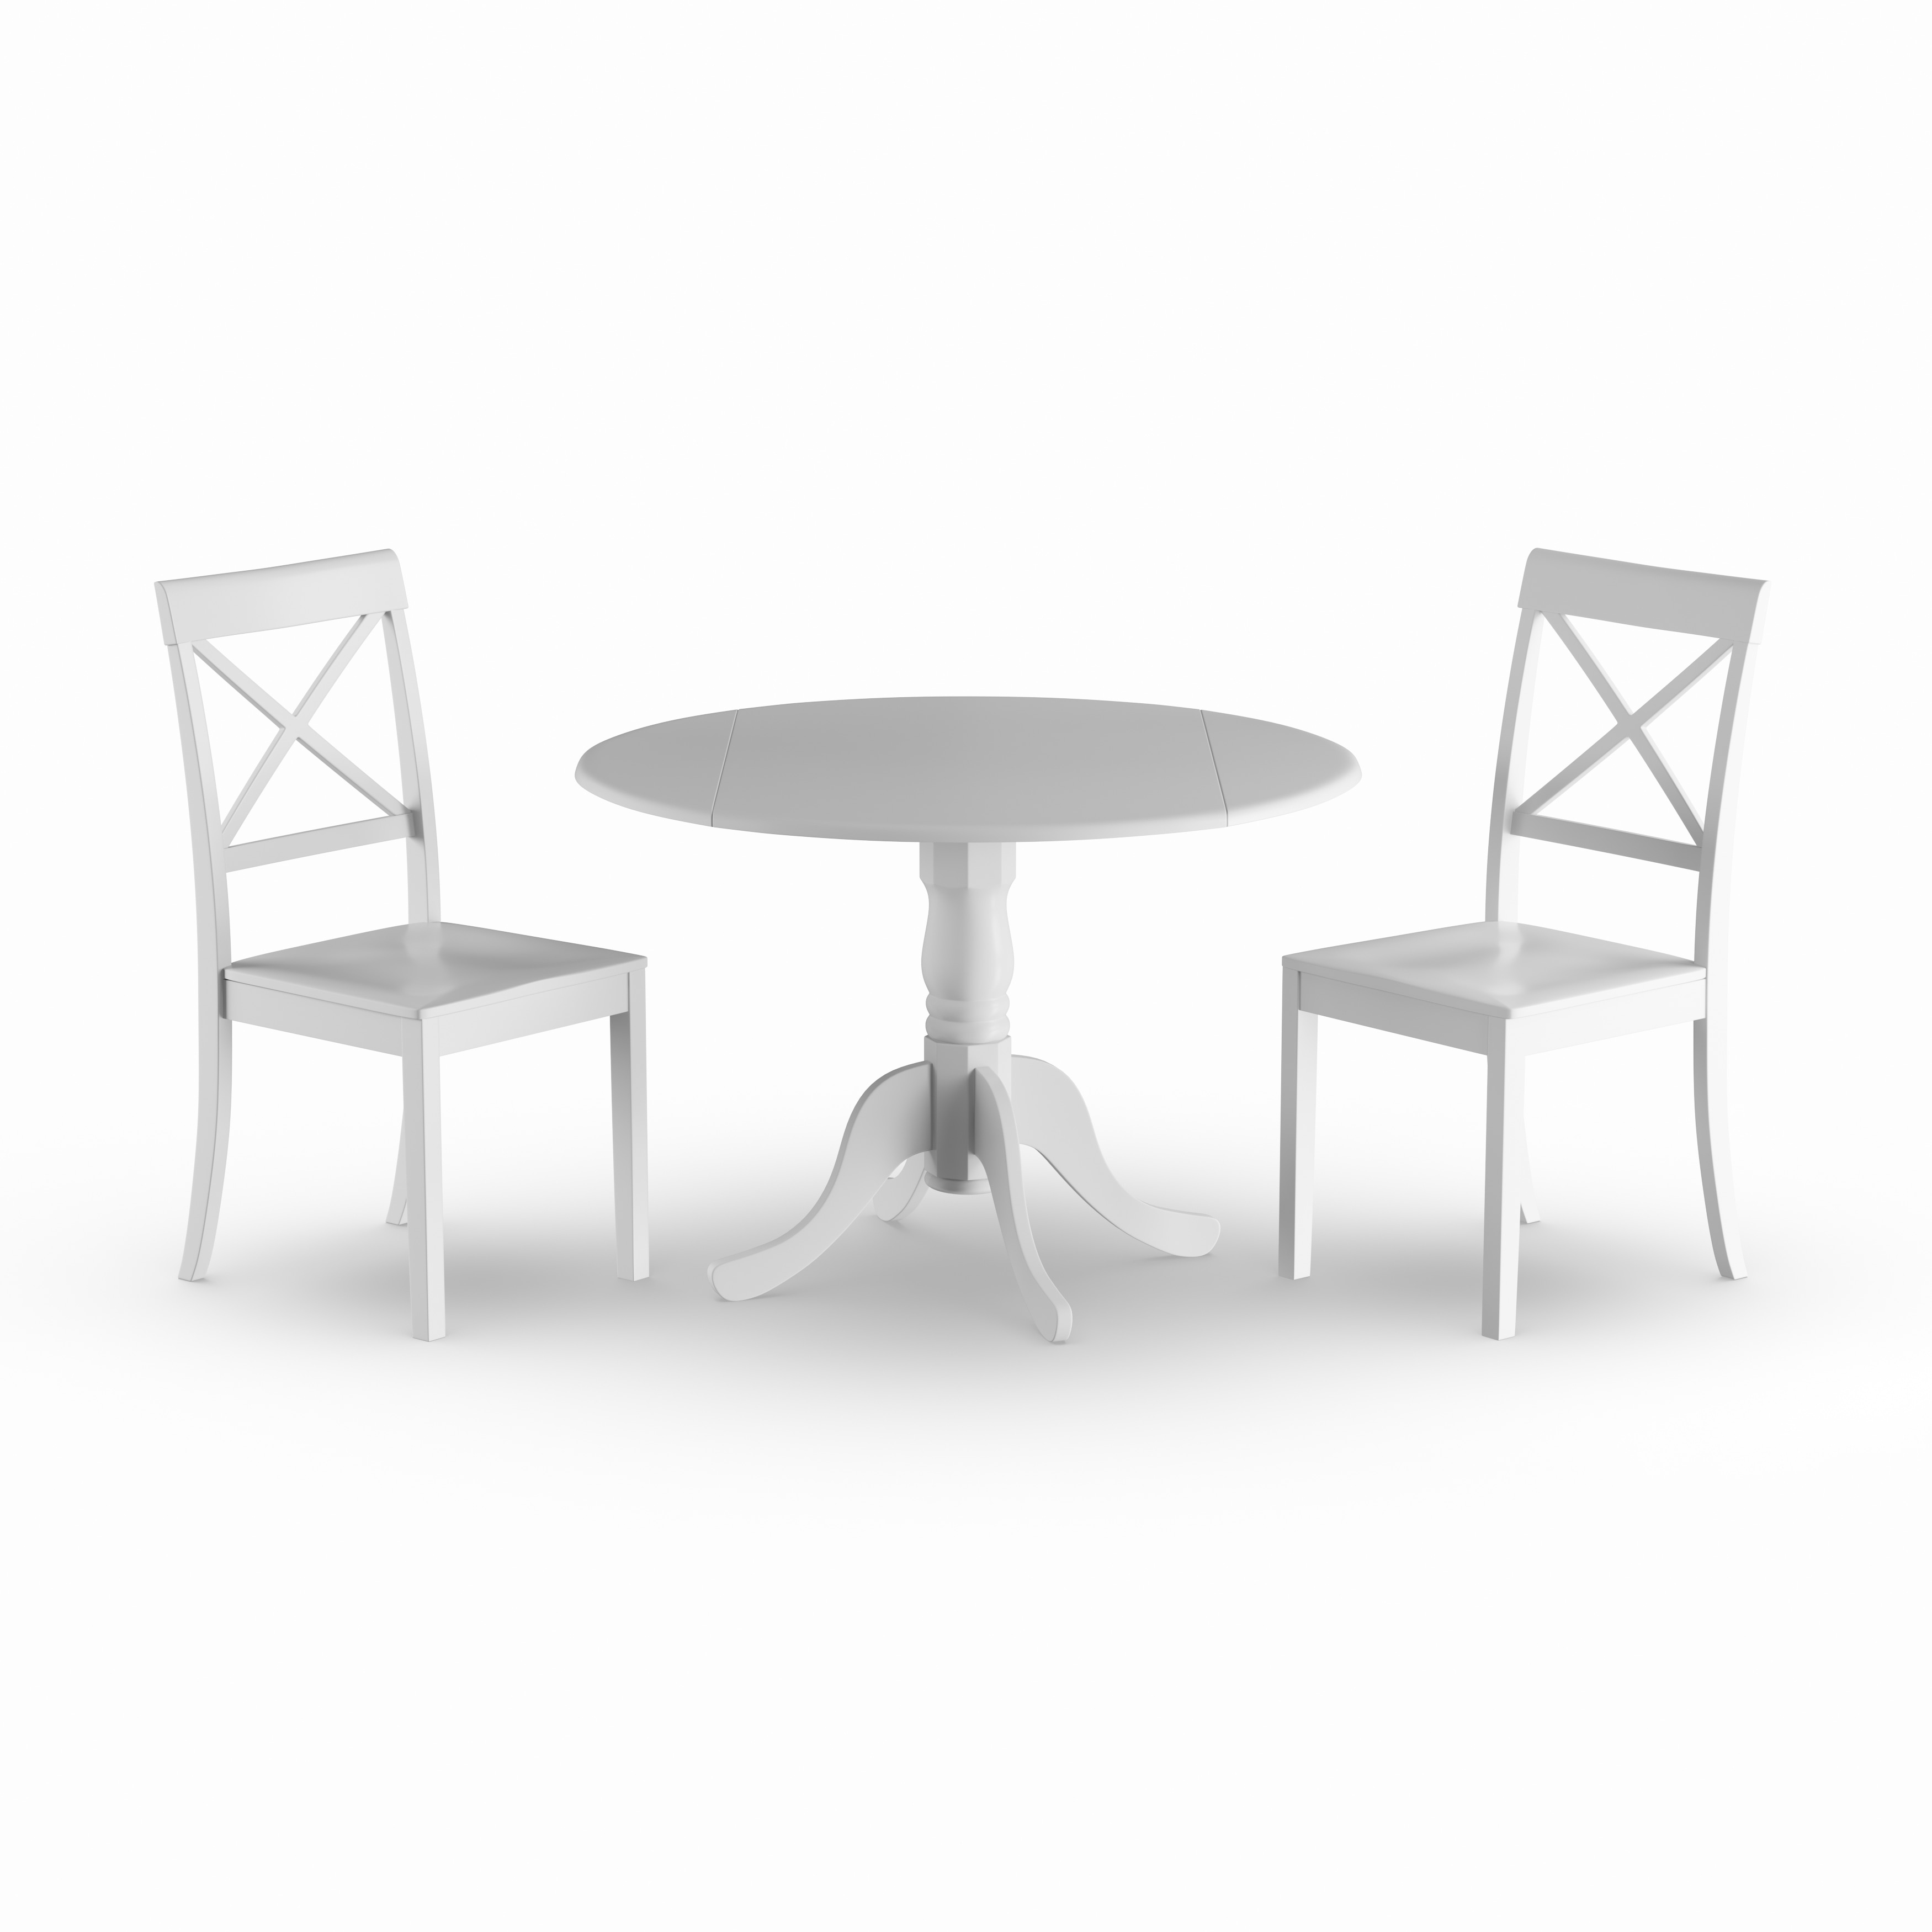 The Gray Barn Ferndale Linen White Table And 2 Chairs 3 Piece Dining Set